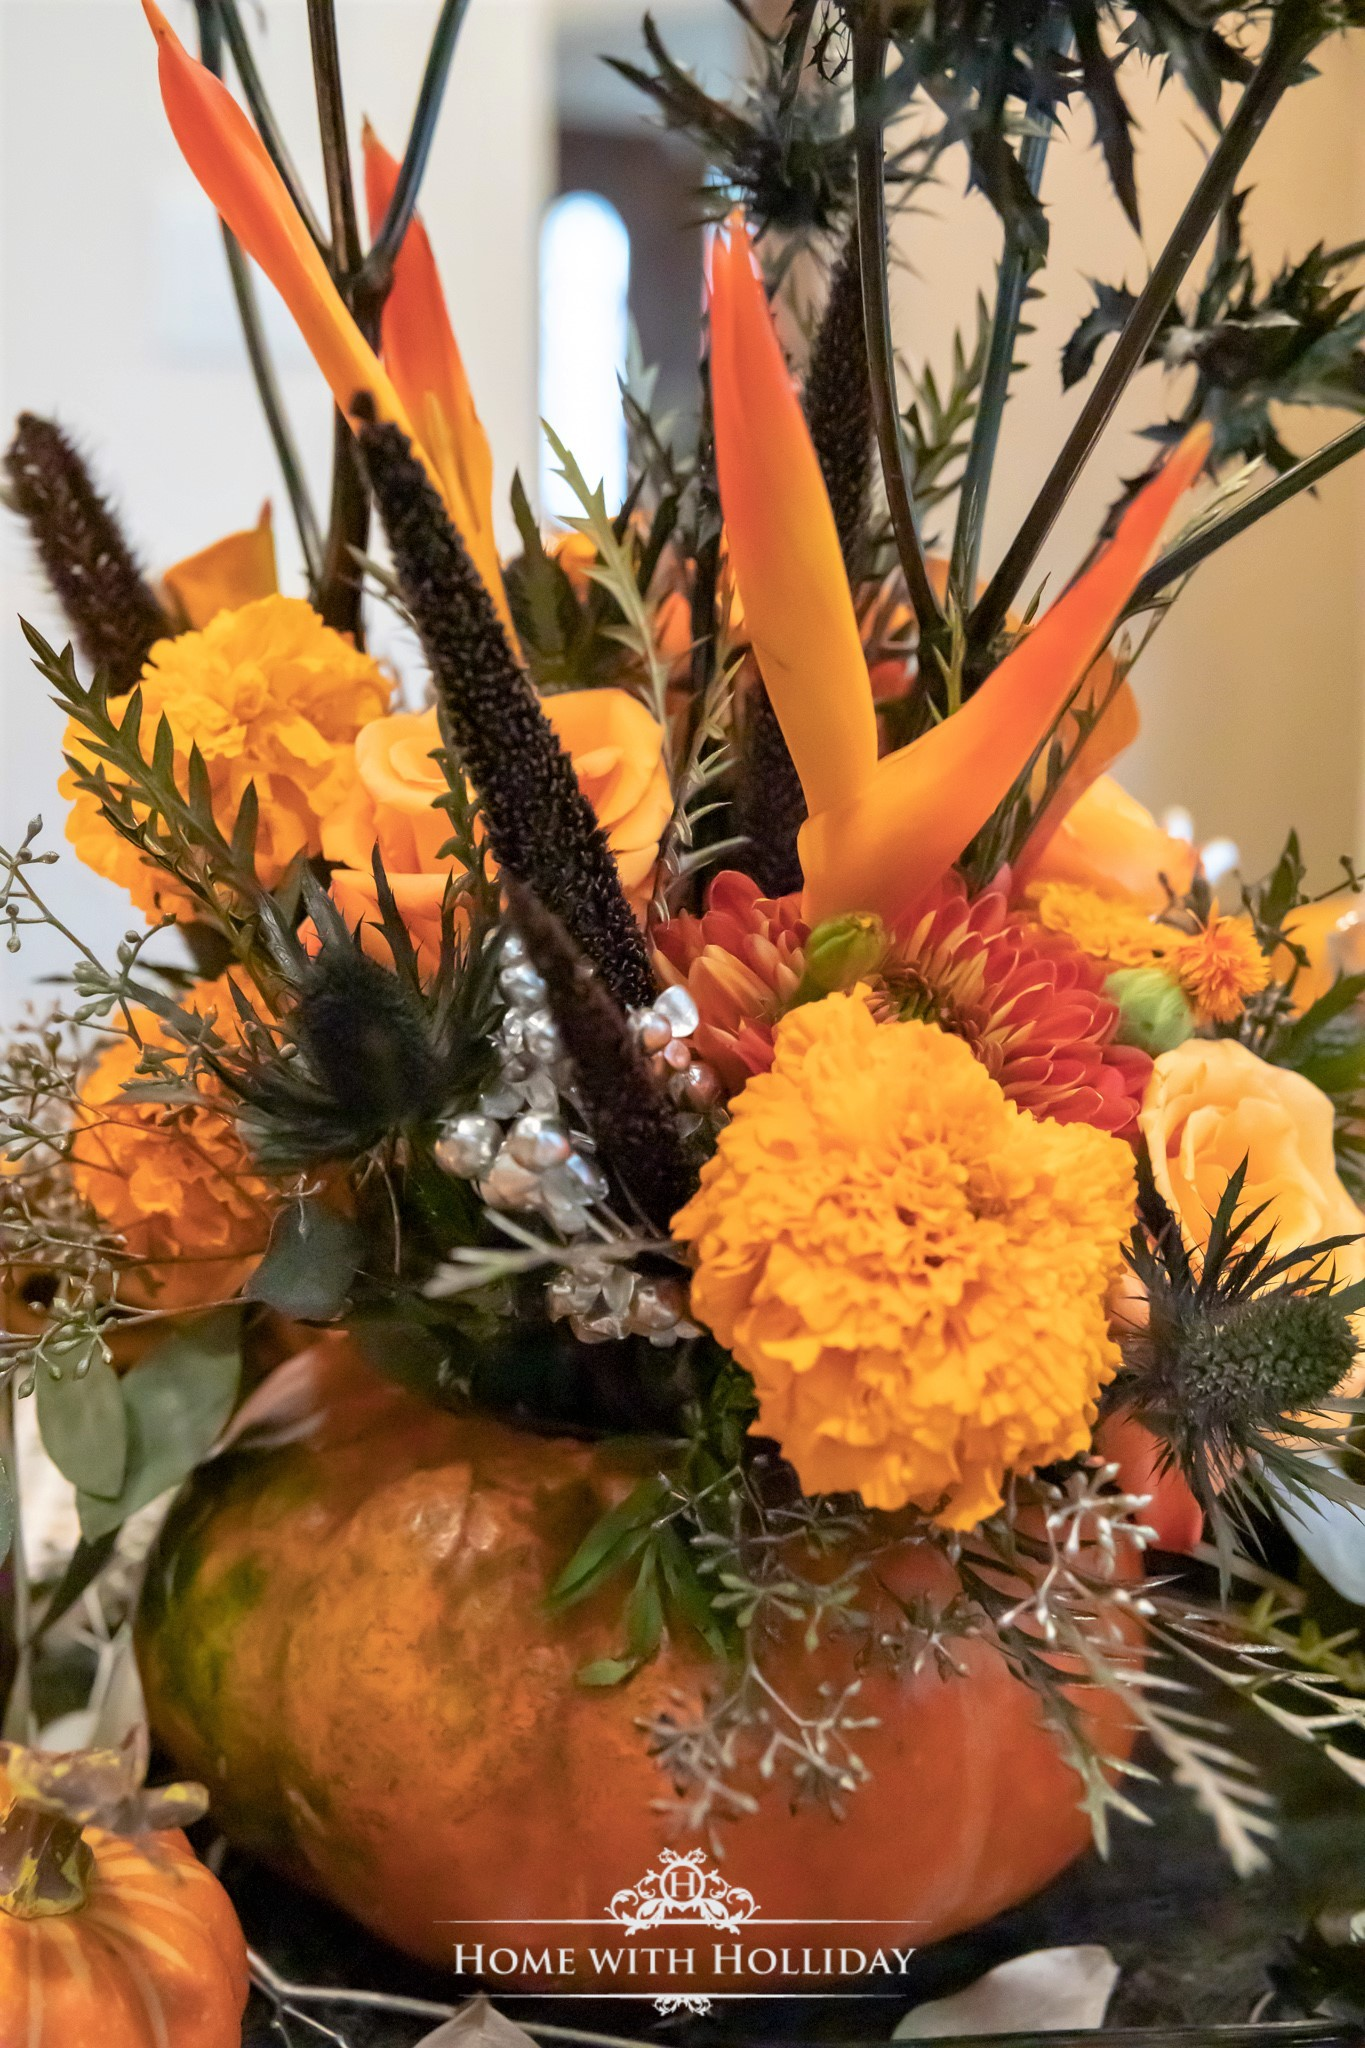 Elegant Halloween Table Setting with Pumpkins - Centerpiece - Home with Holliday